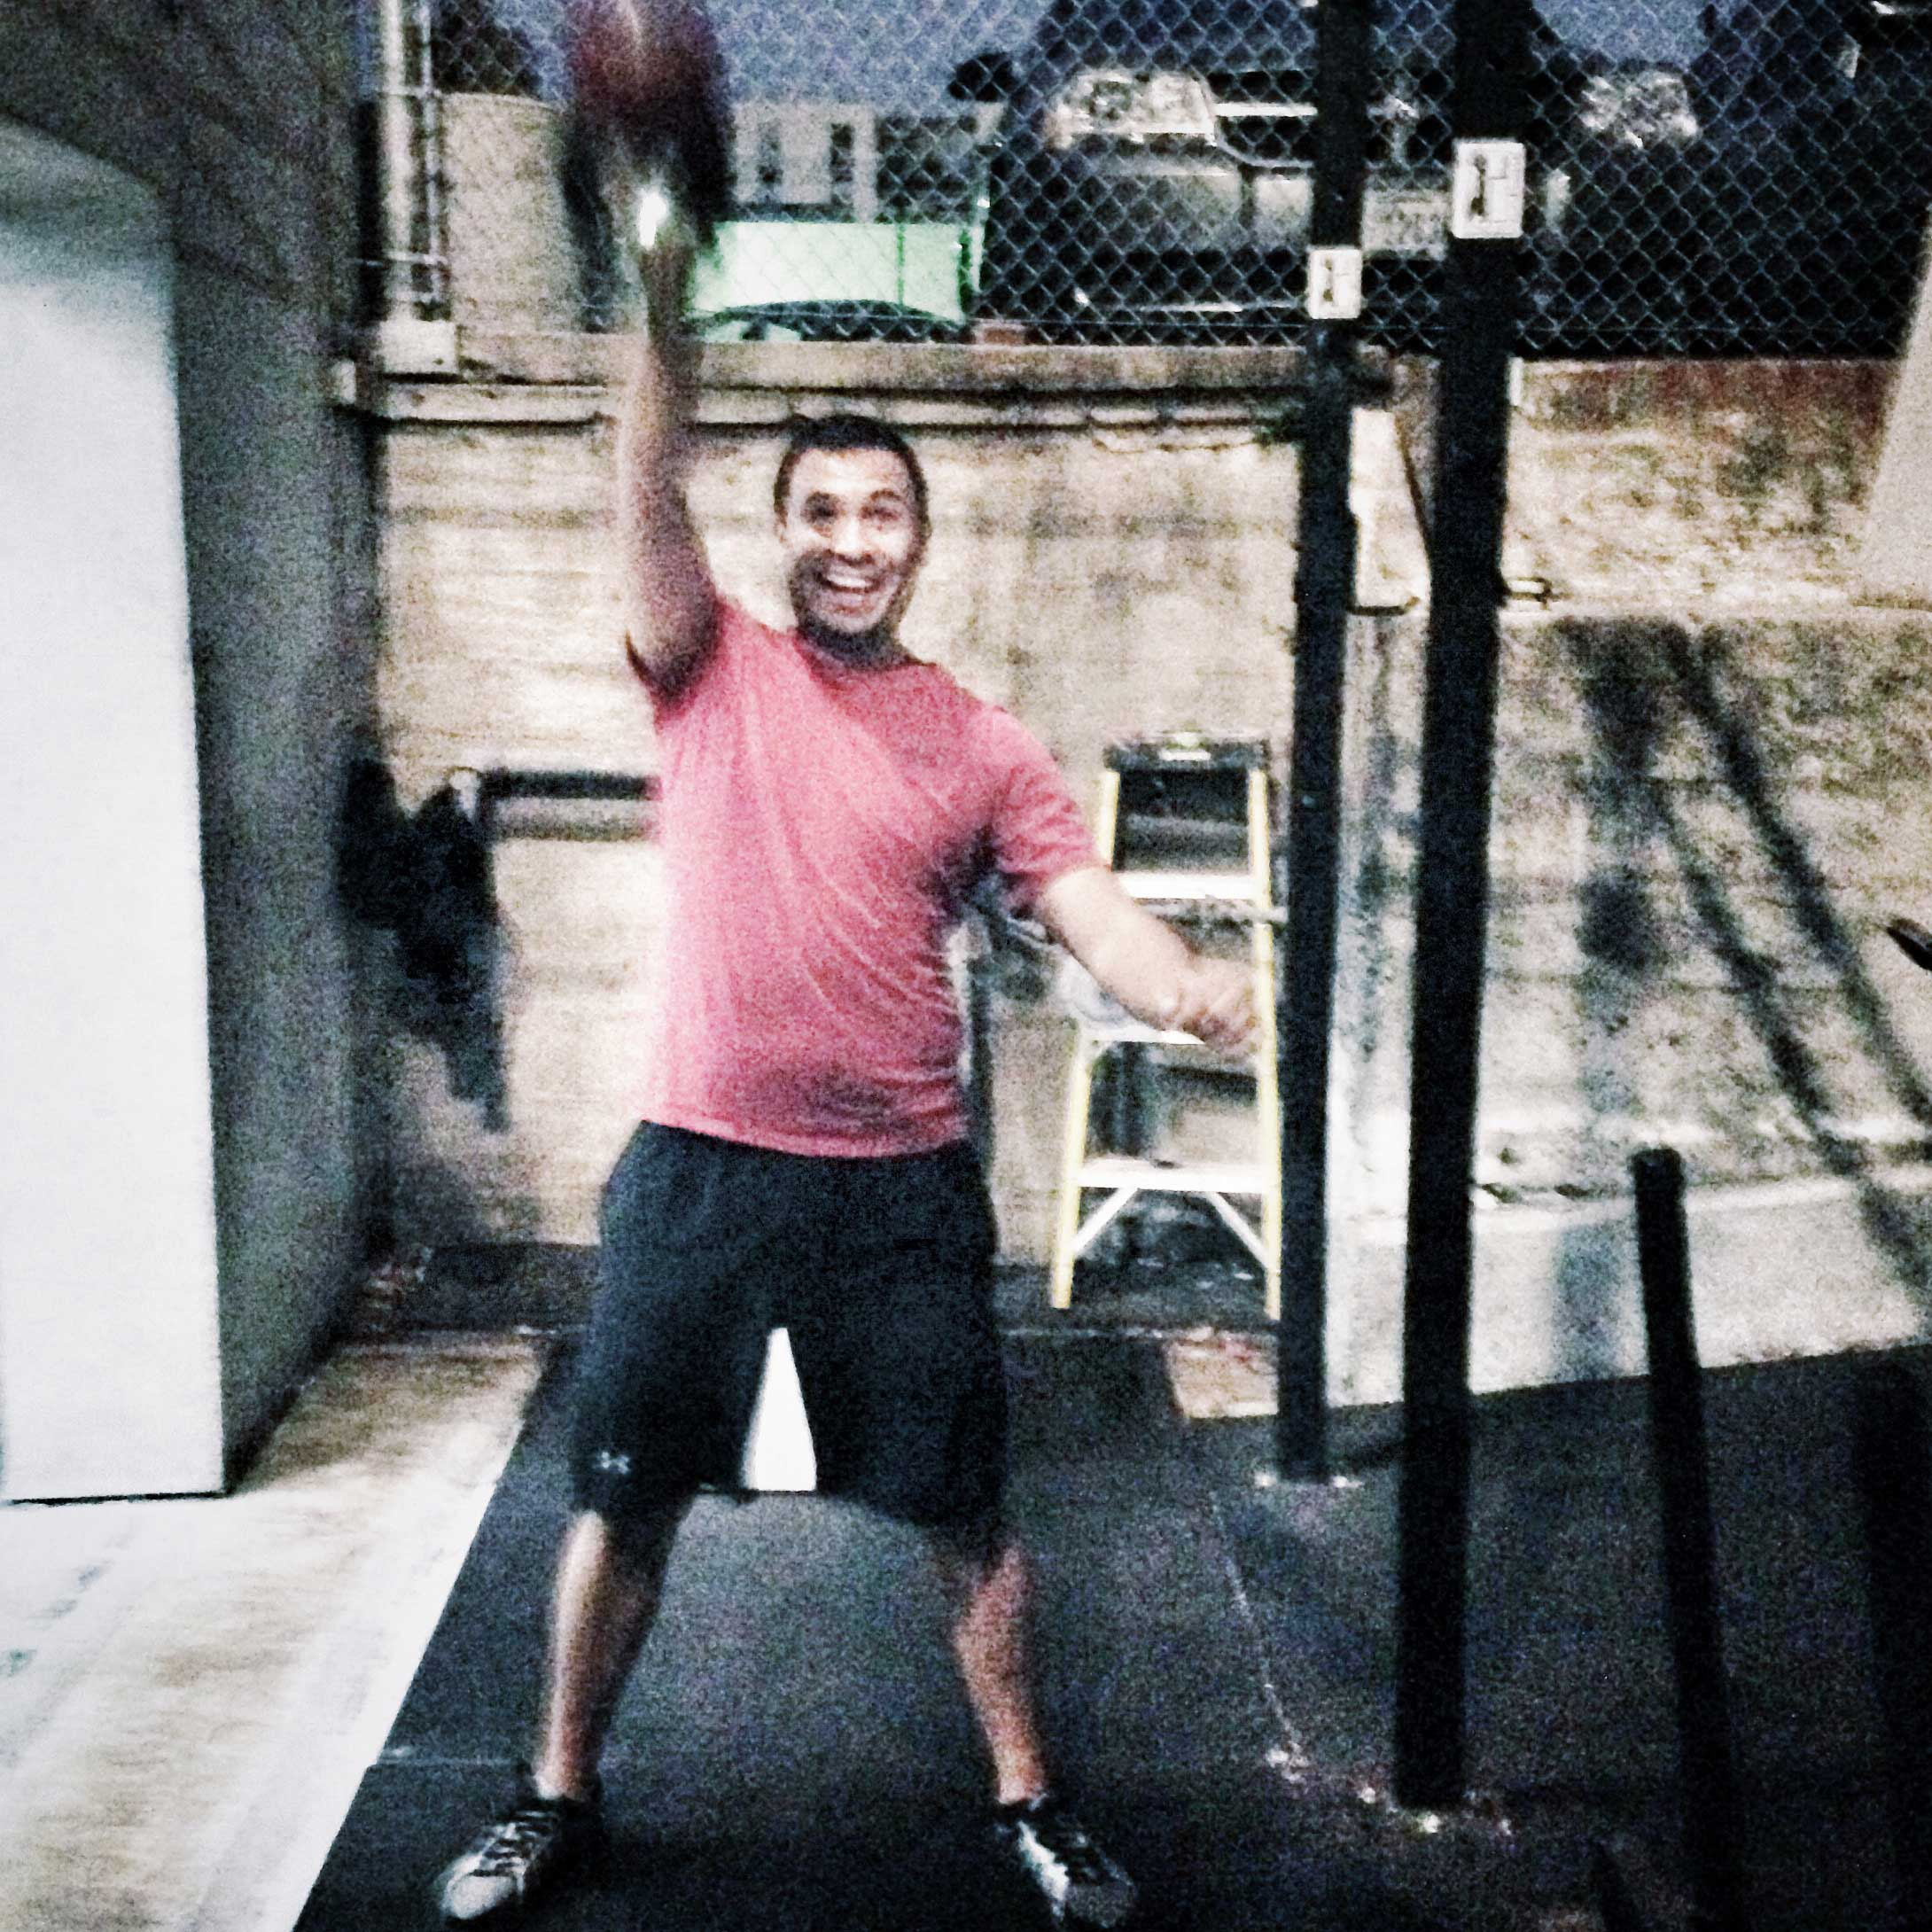 KB Snatches @ 6 a.m.